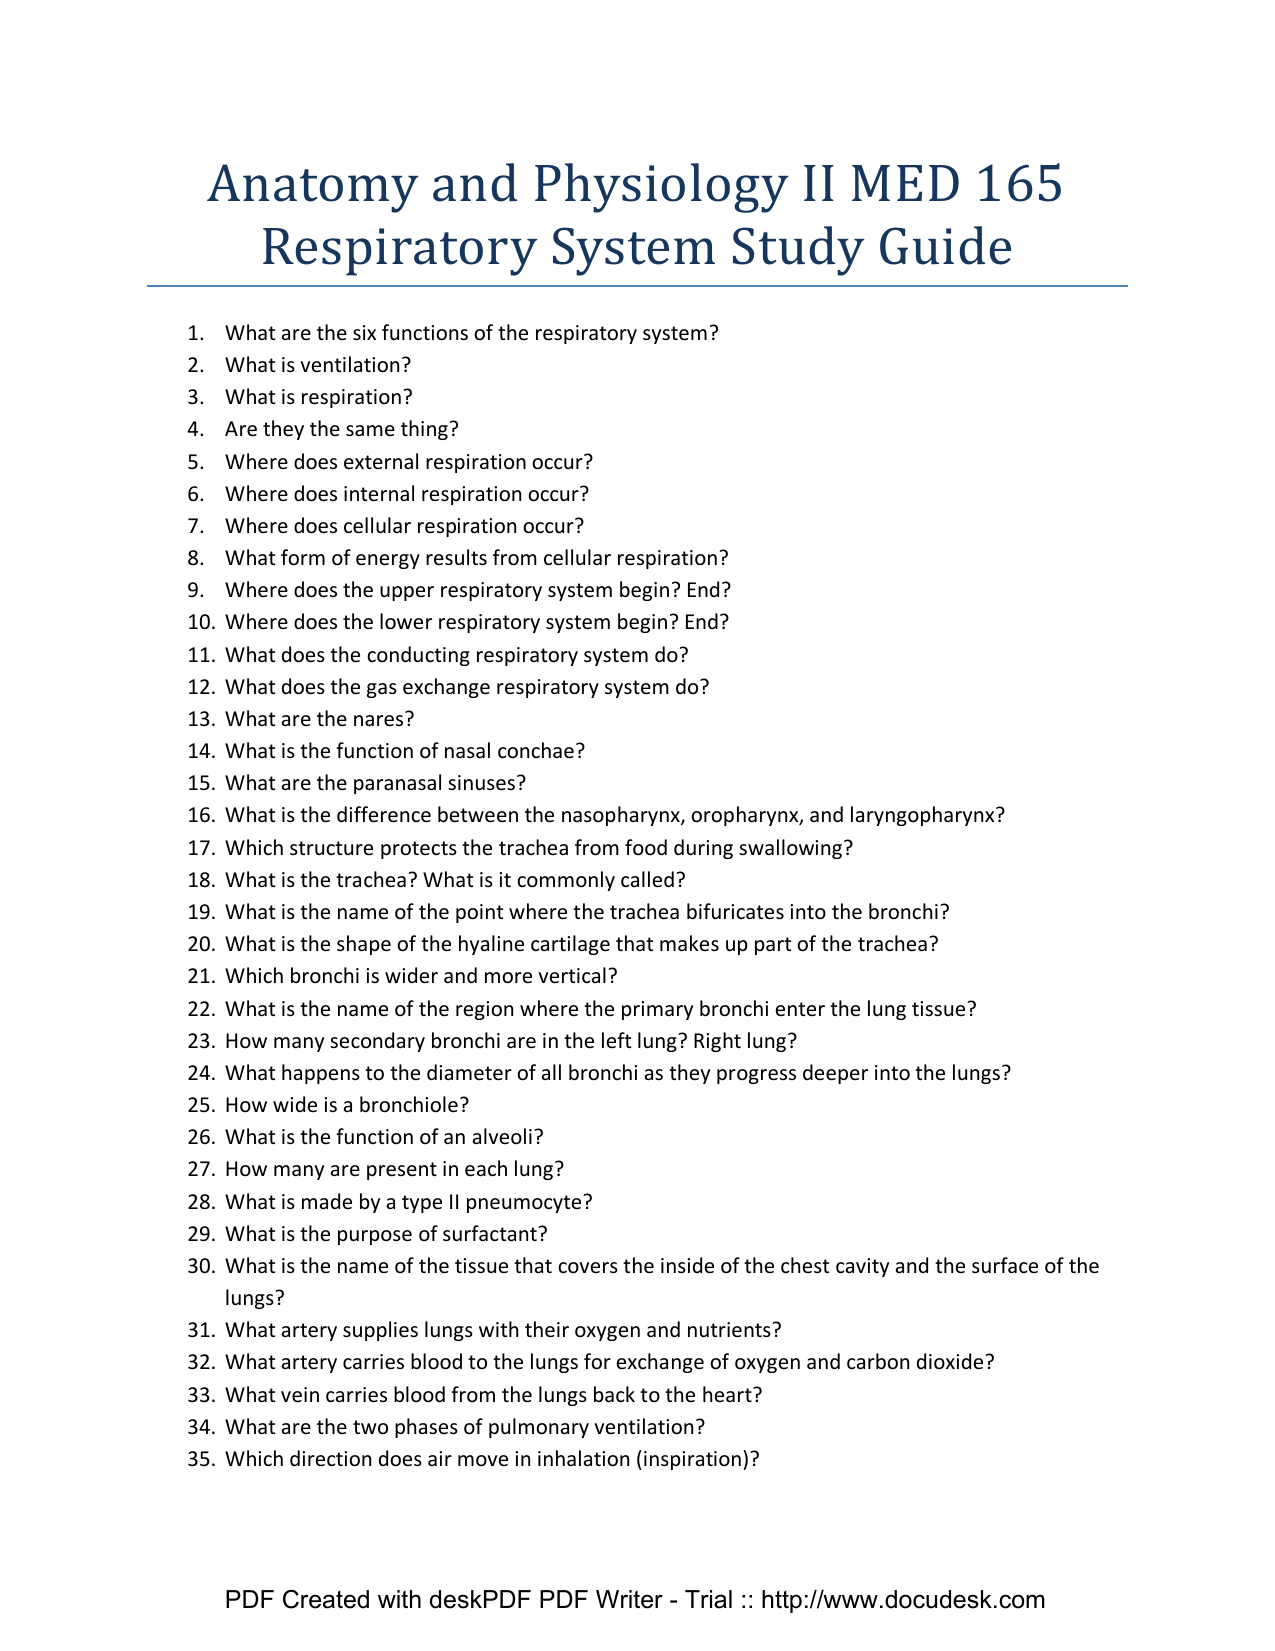 Beste Anatomy And Physiology Respiratory System Study Guide Ideen ...